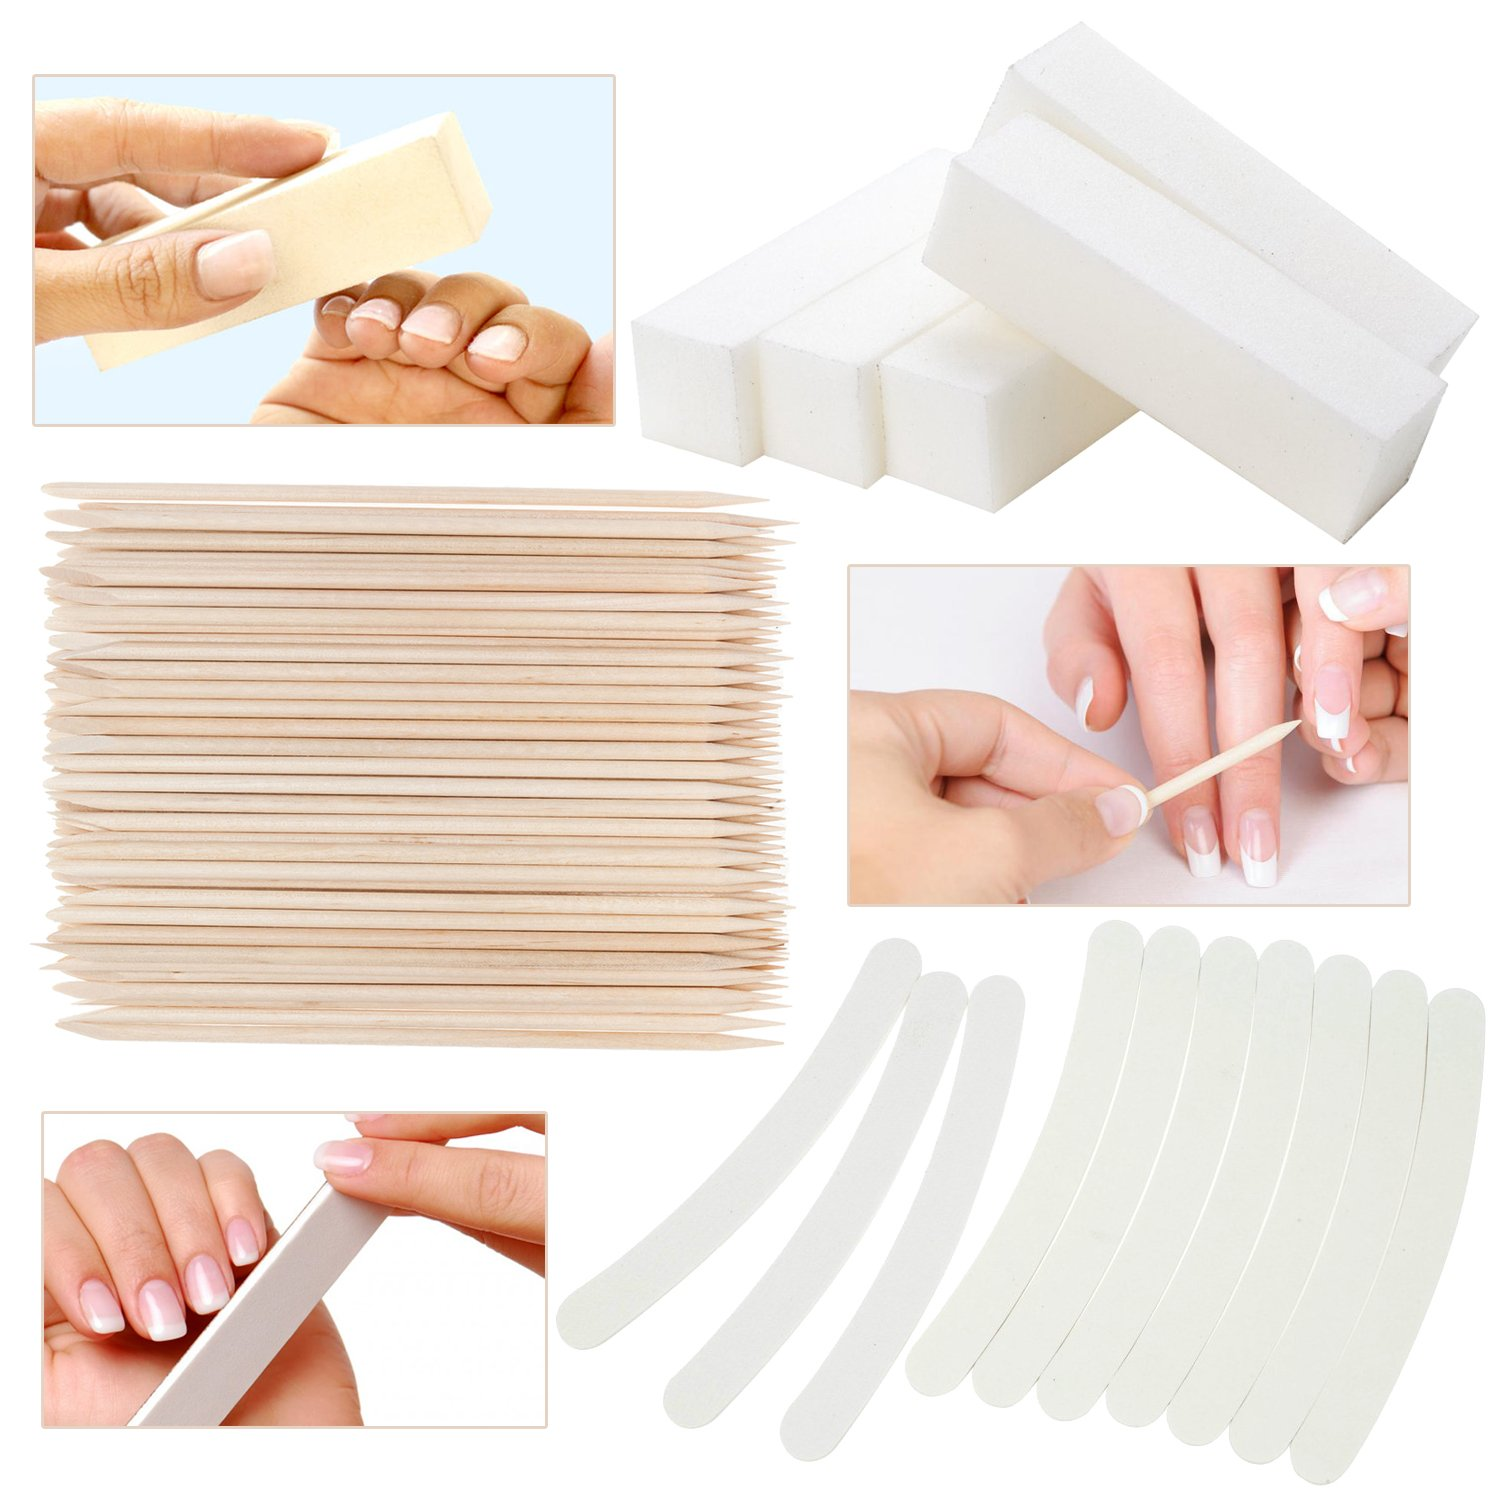 Great Offer Set Kit of Professional High Quality Manicure Pedicure Nail Art Accessories Tools Including 5pcs White Buffers / Sanding / Buffing Blocks 100/100, 10pcs 100/180 Curved Banana / Boomerang Files / Filers And 100pcs Orange Wooden Sticks / Cuticle